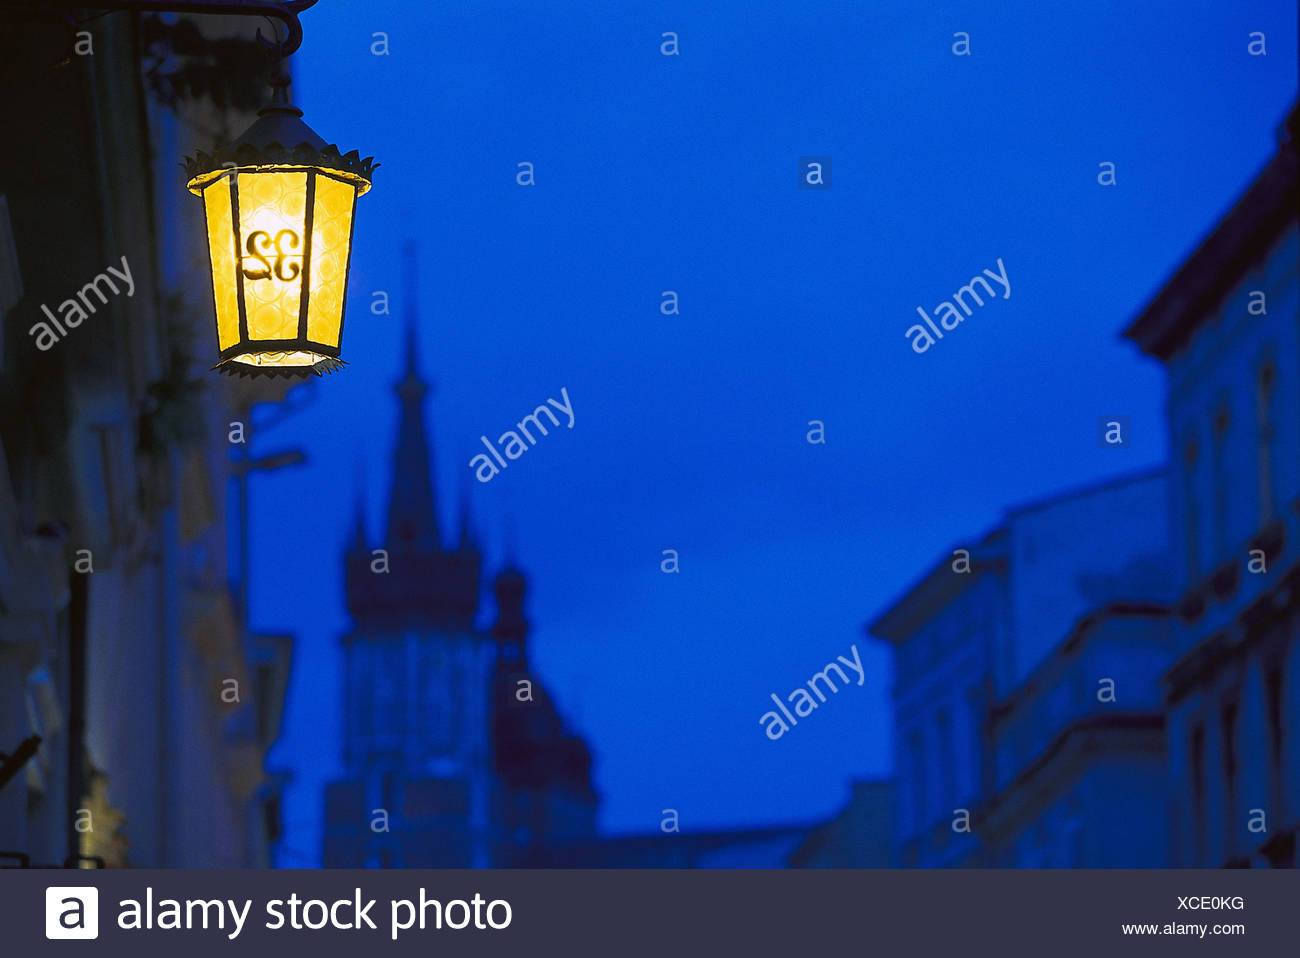 Nummer High Resolution Stock Photography And Images Alamy